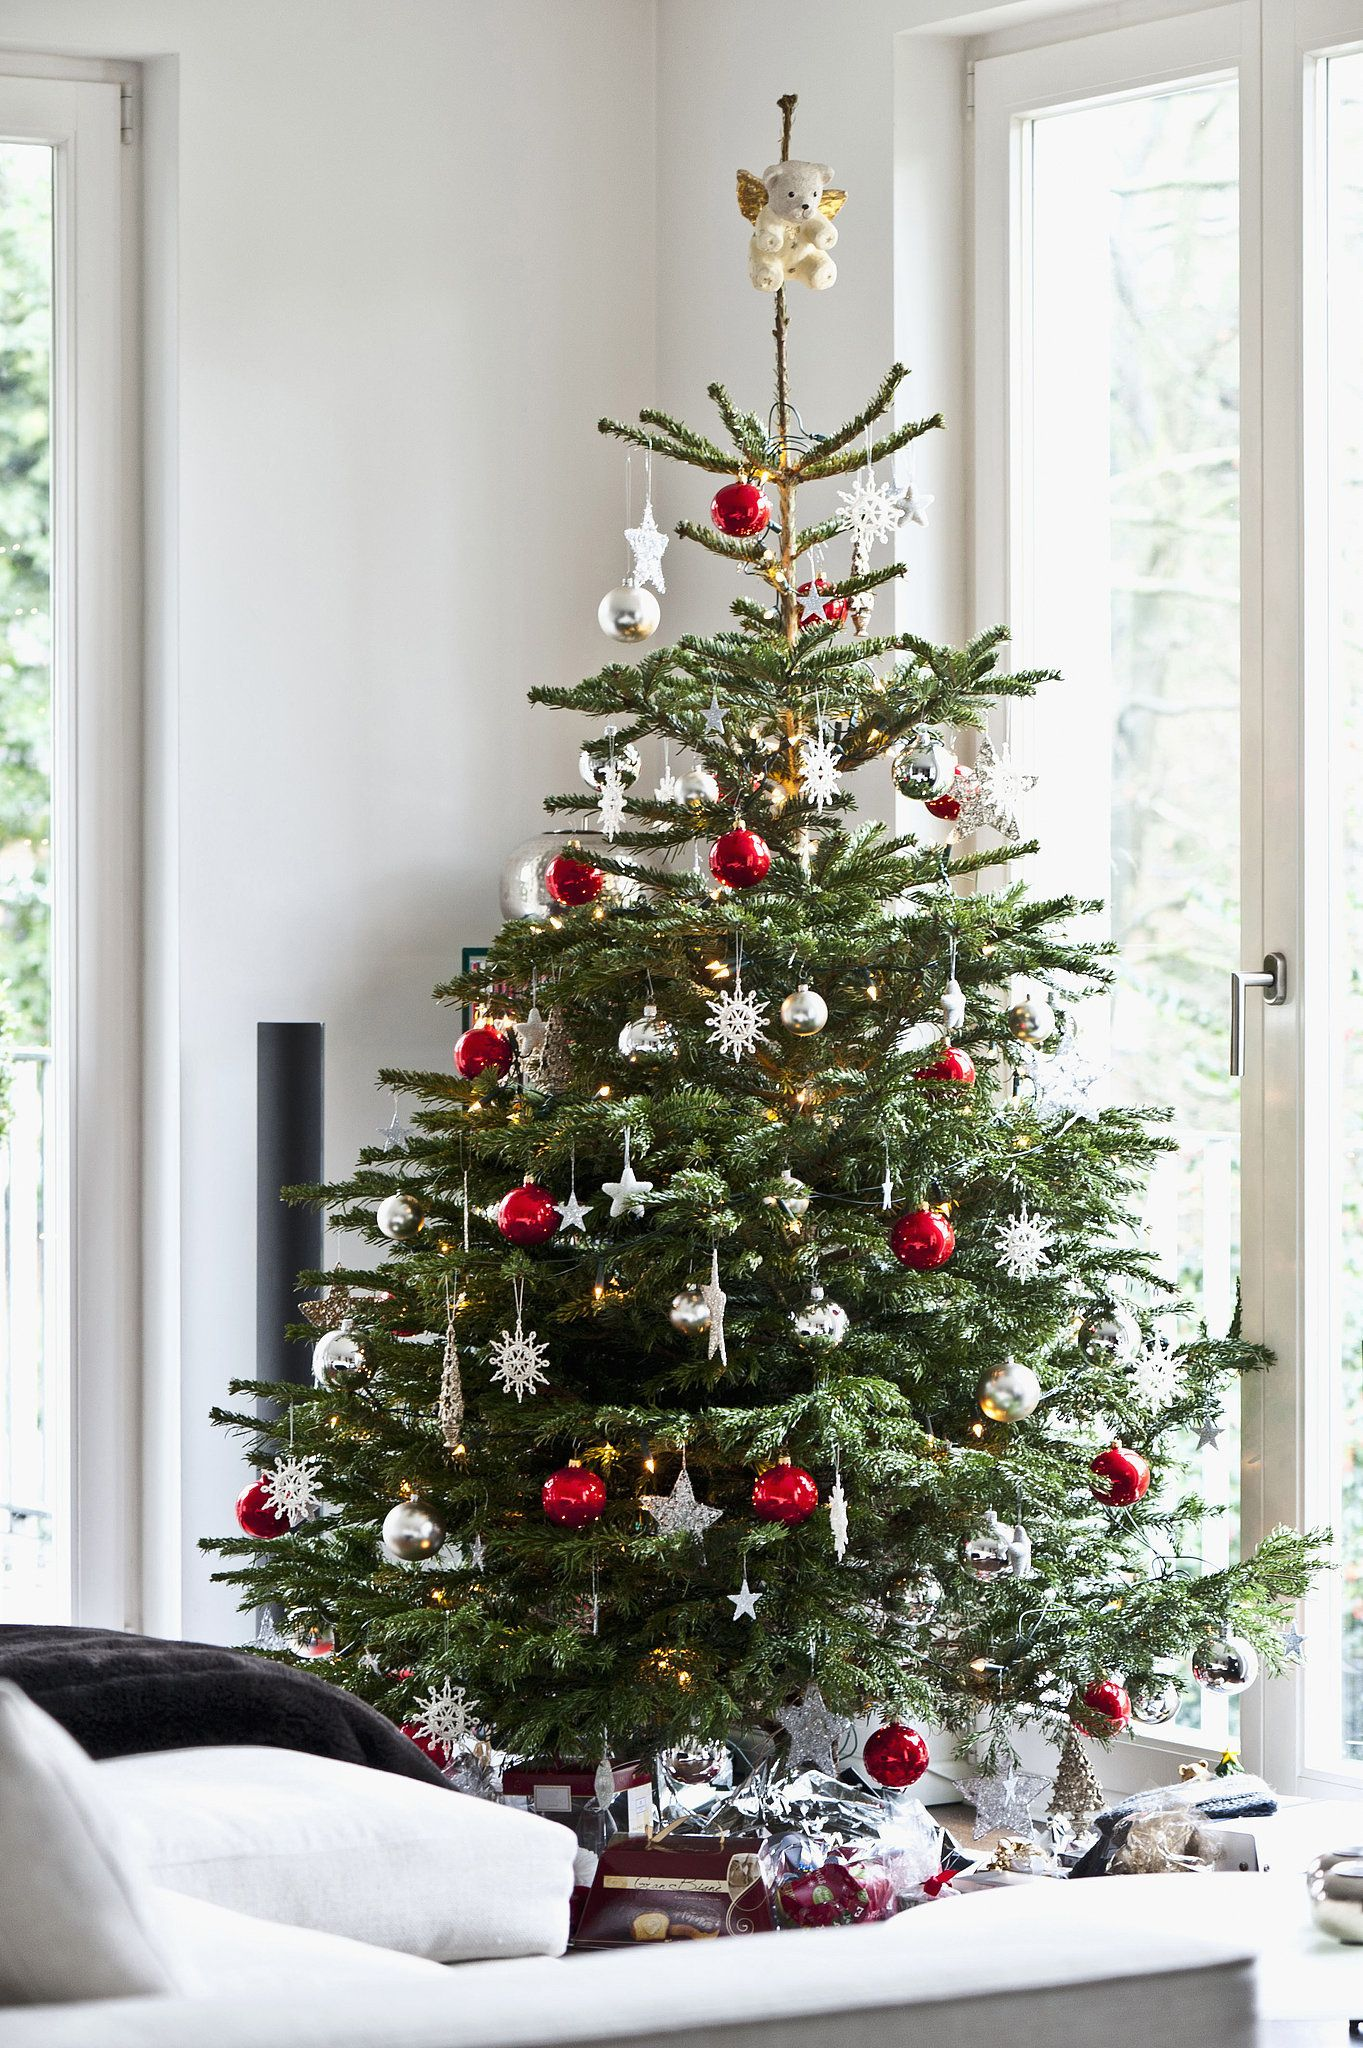 11 Tips For Decorating Your Holiday Tree Like a Pro | Celebrate ...